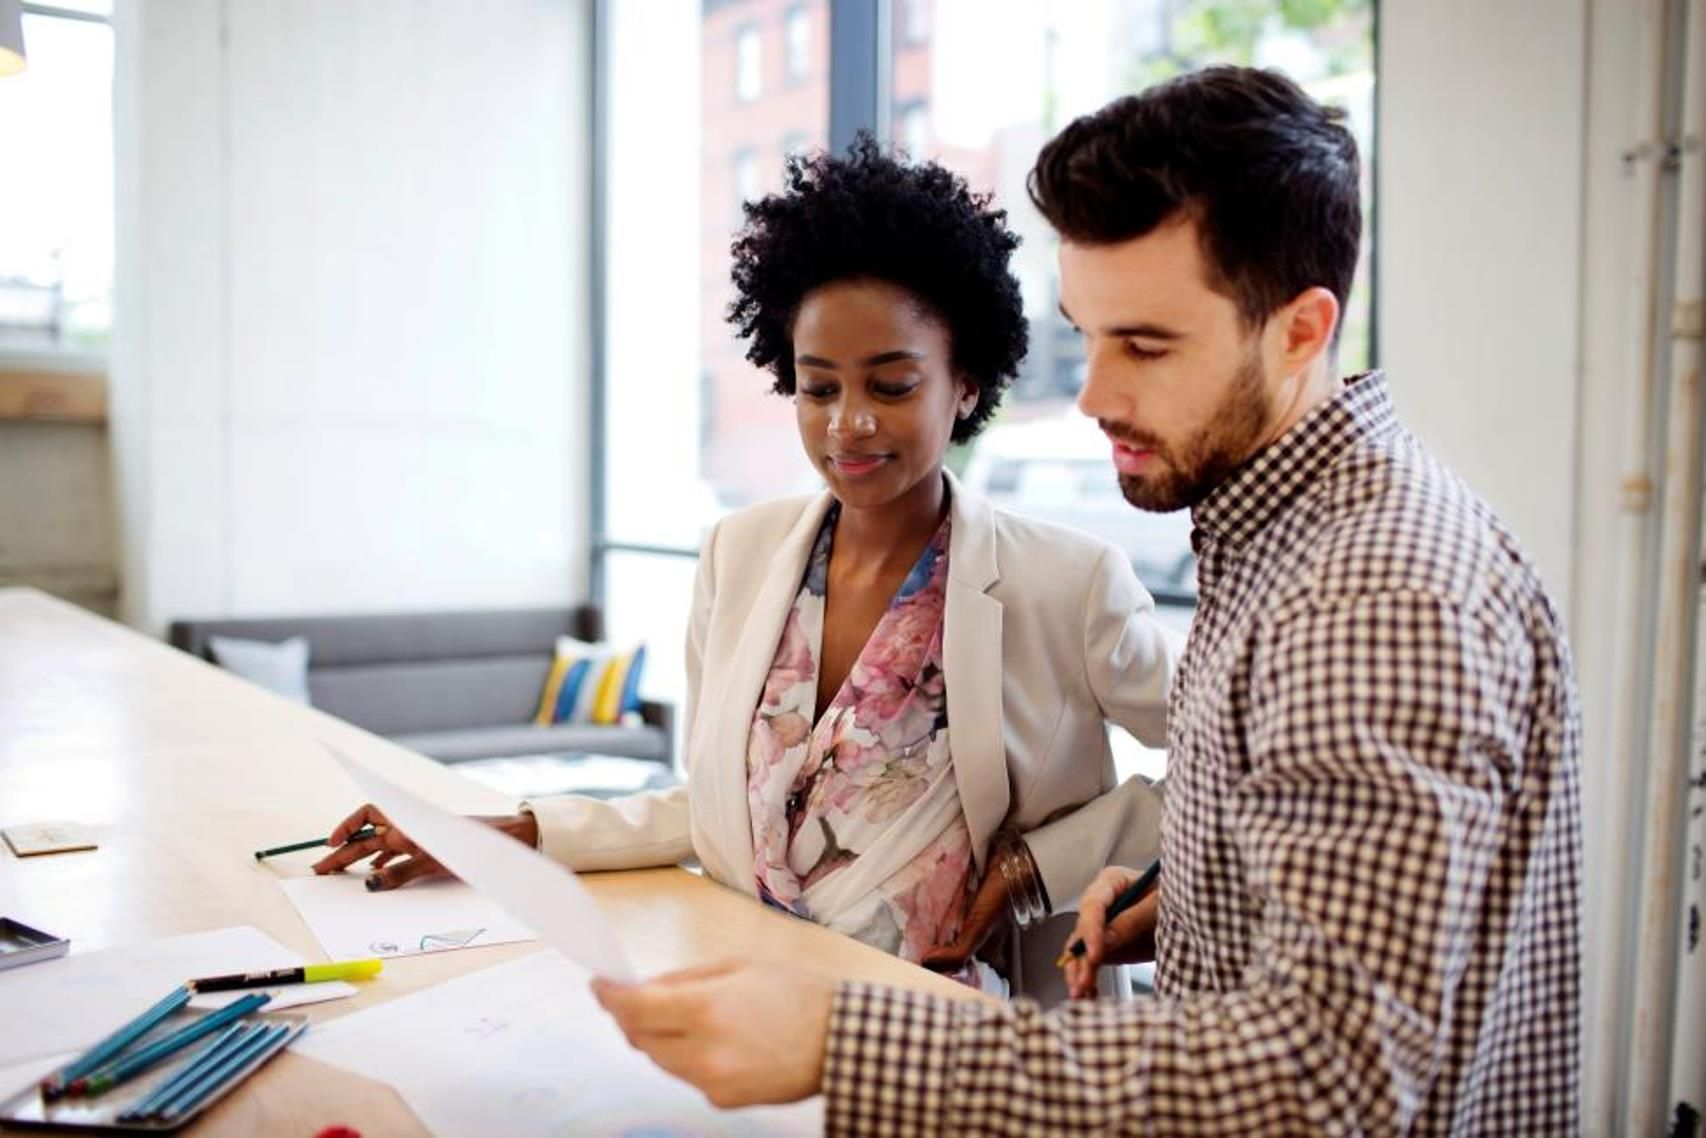 Business Mentor NY Free Business Mentoring Program in New